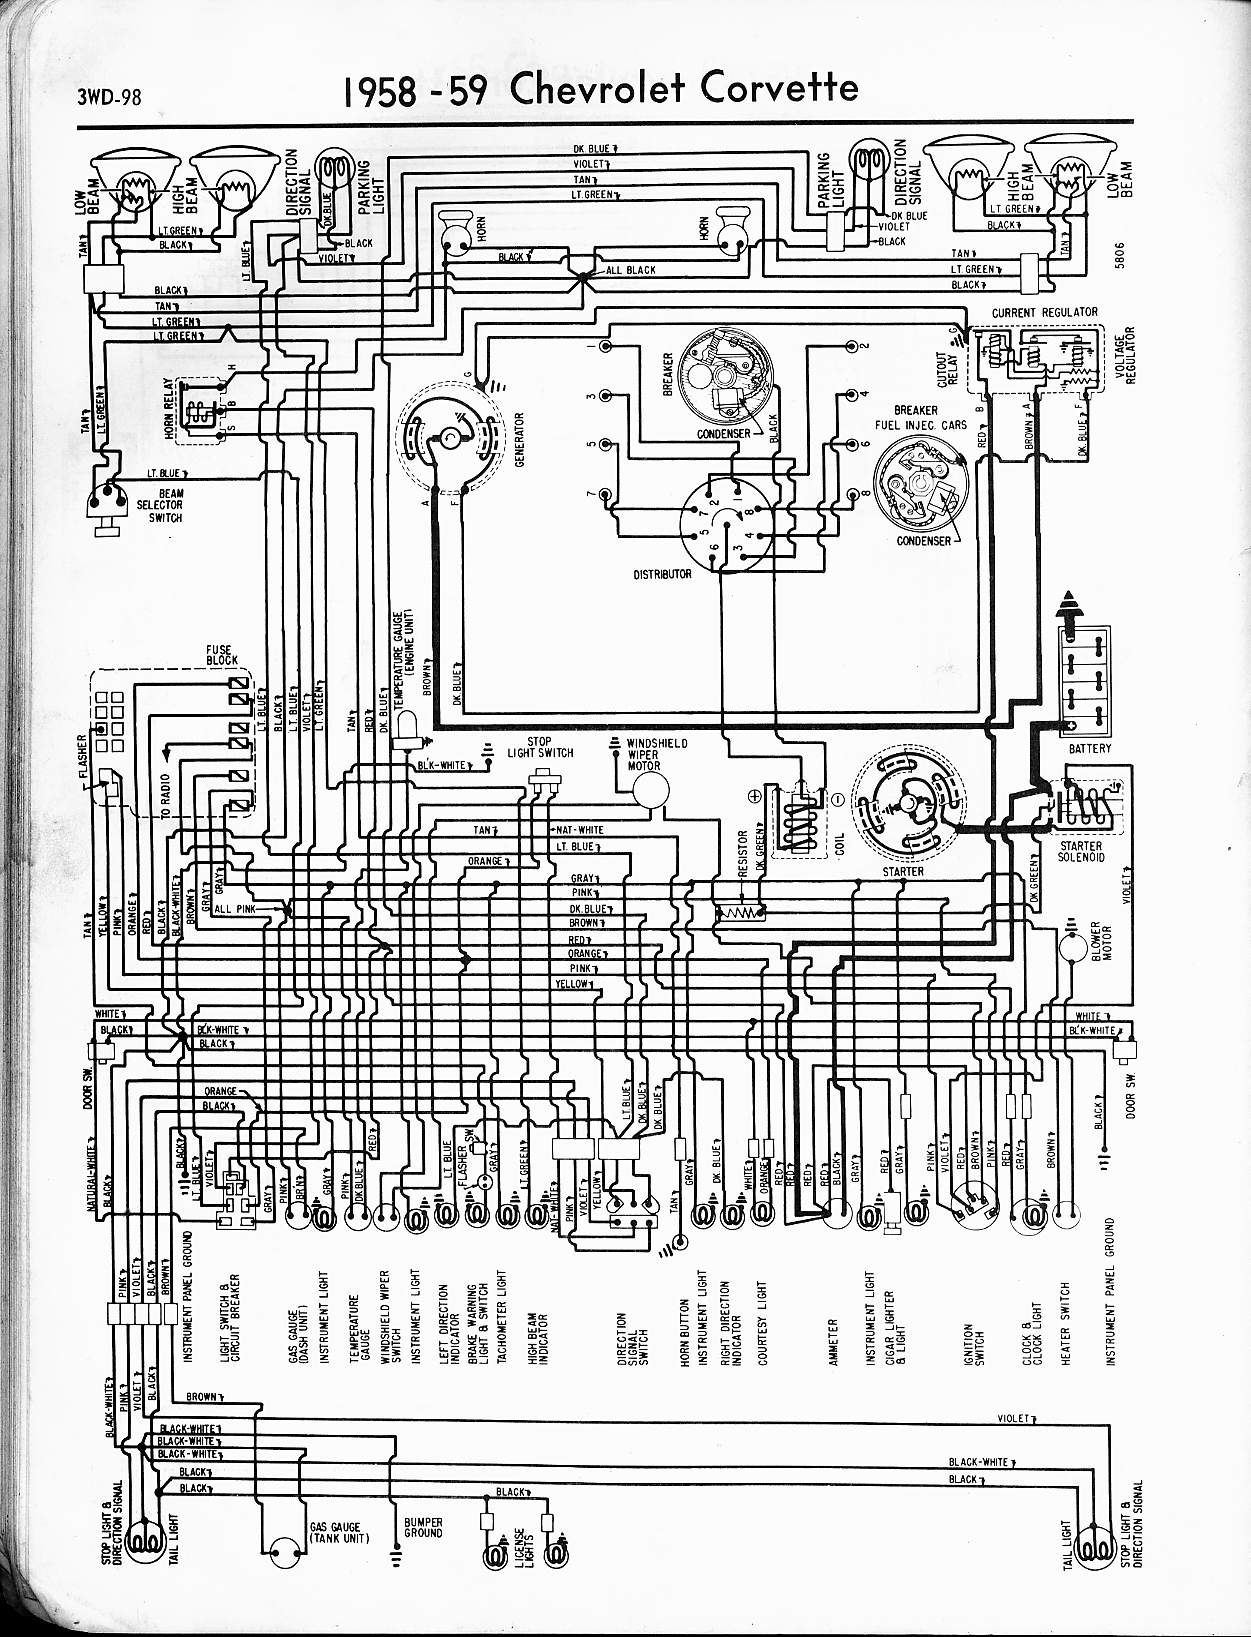 Fantastic 1958 Chevrolet Steering Column Wiring Wiring Diagram Wiring Digital Resources Ommitdefiancerspsorg